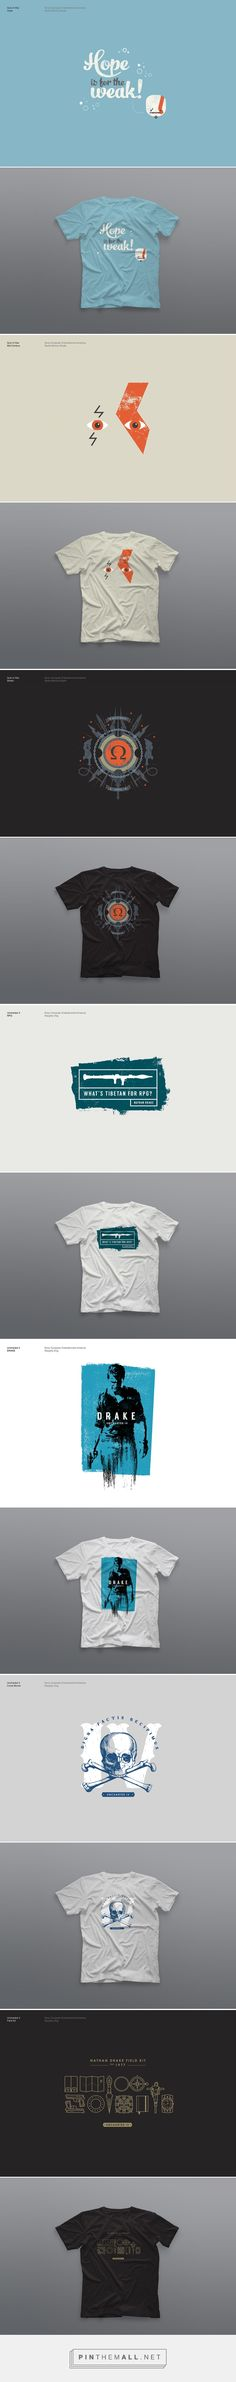 Limited Edition T-Shirts for Sony PlayStation by Alex Townsend